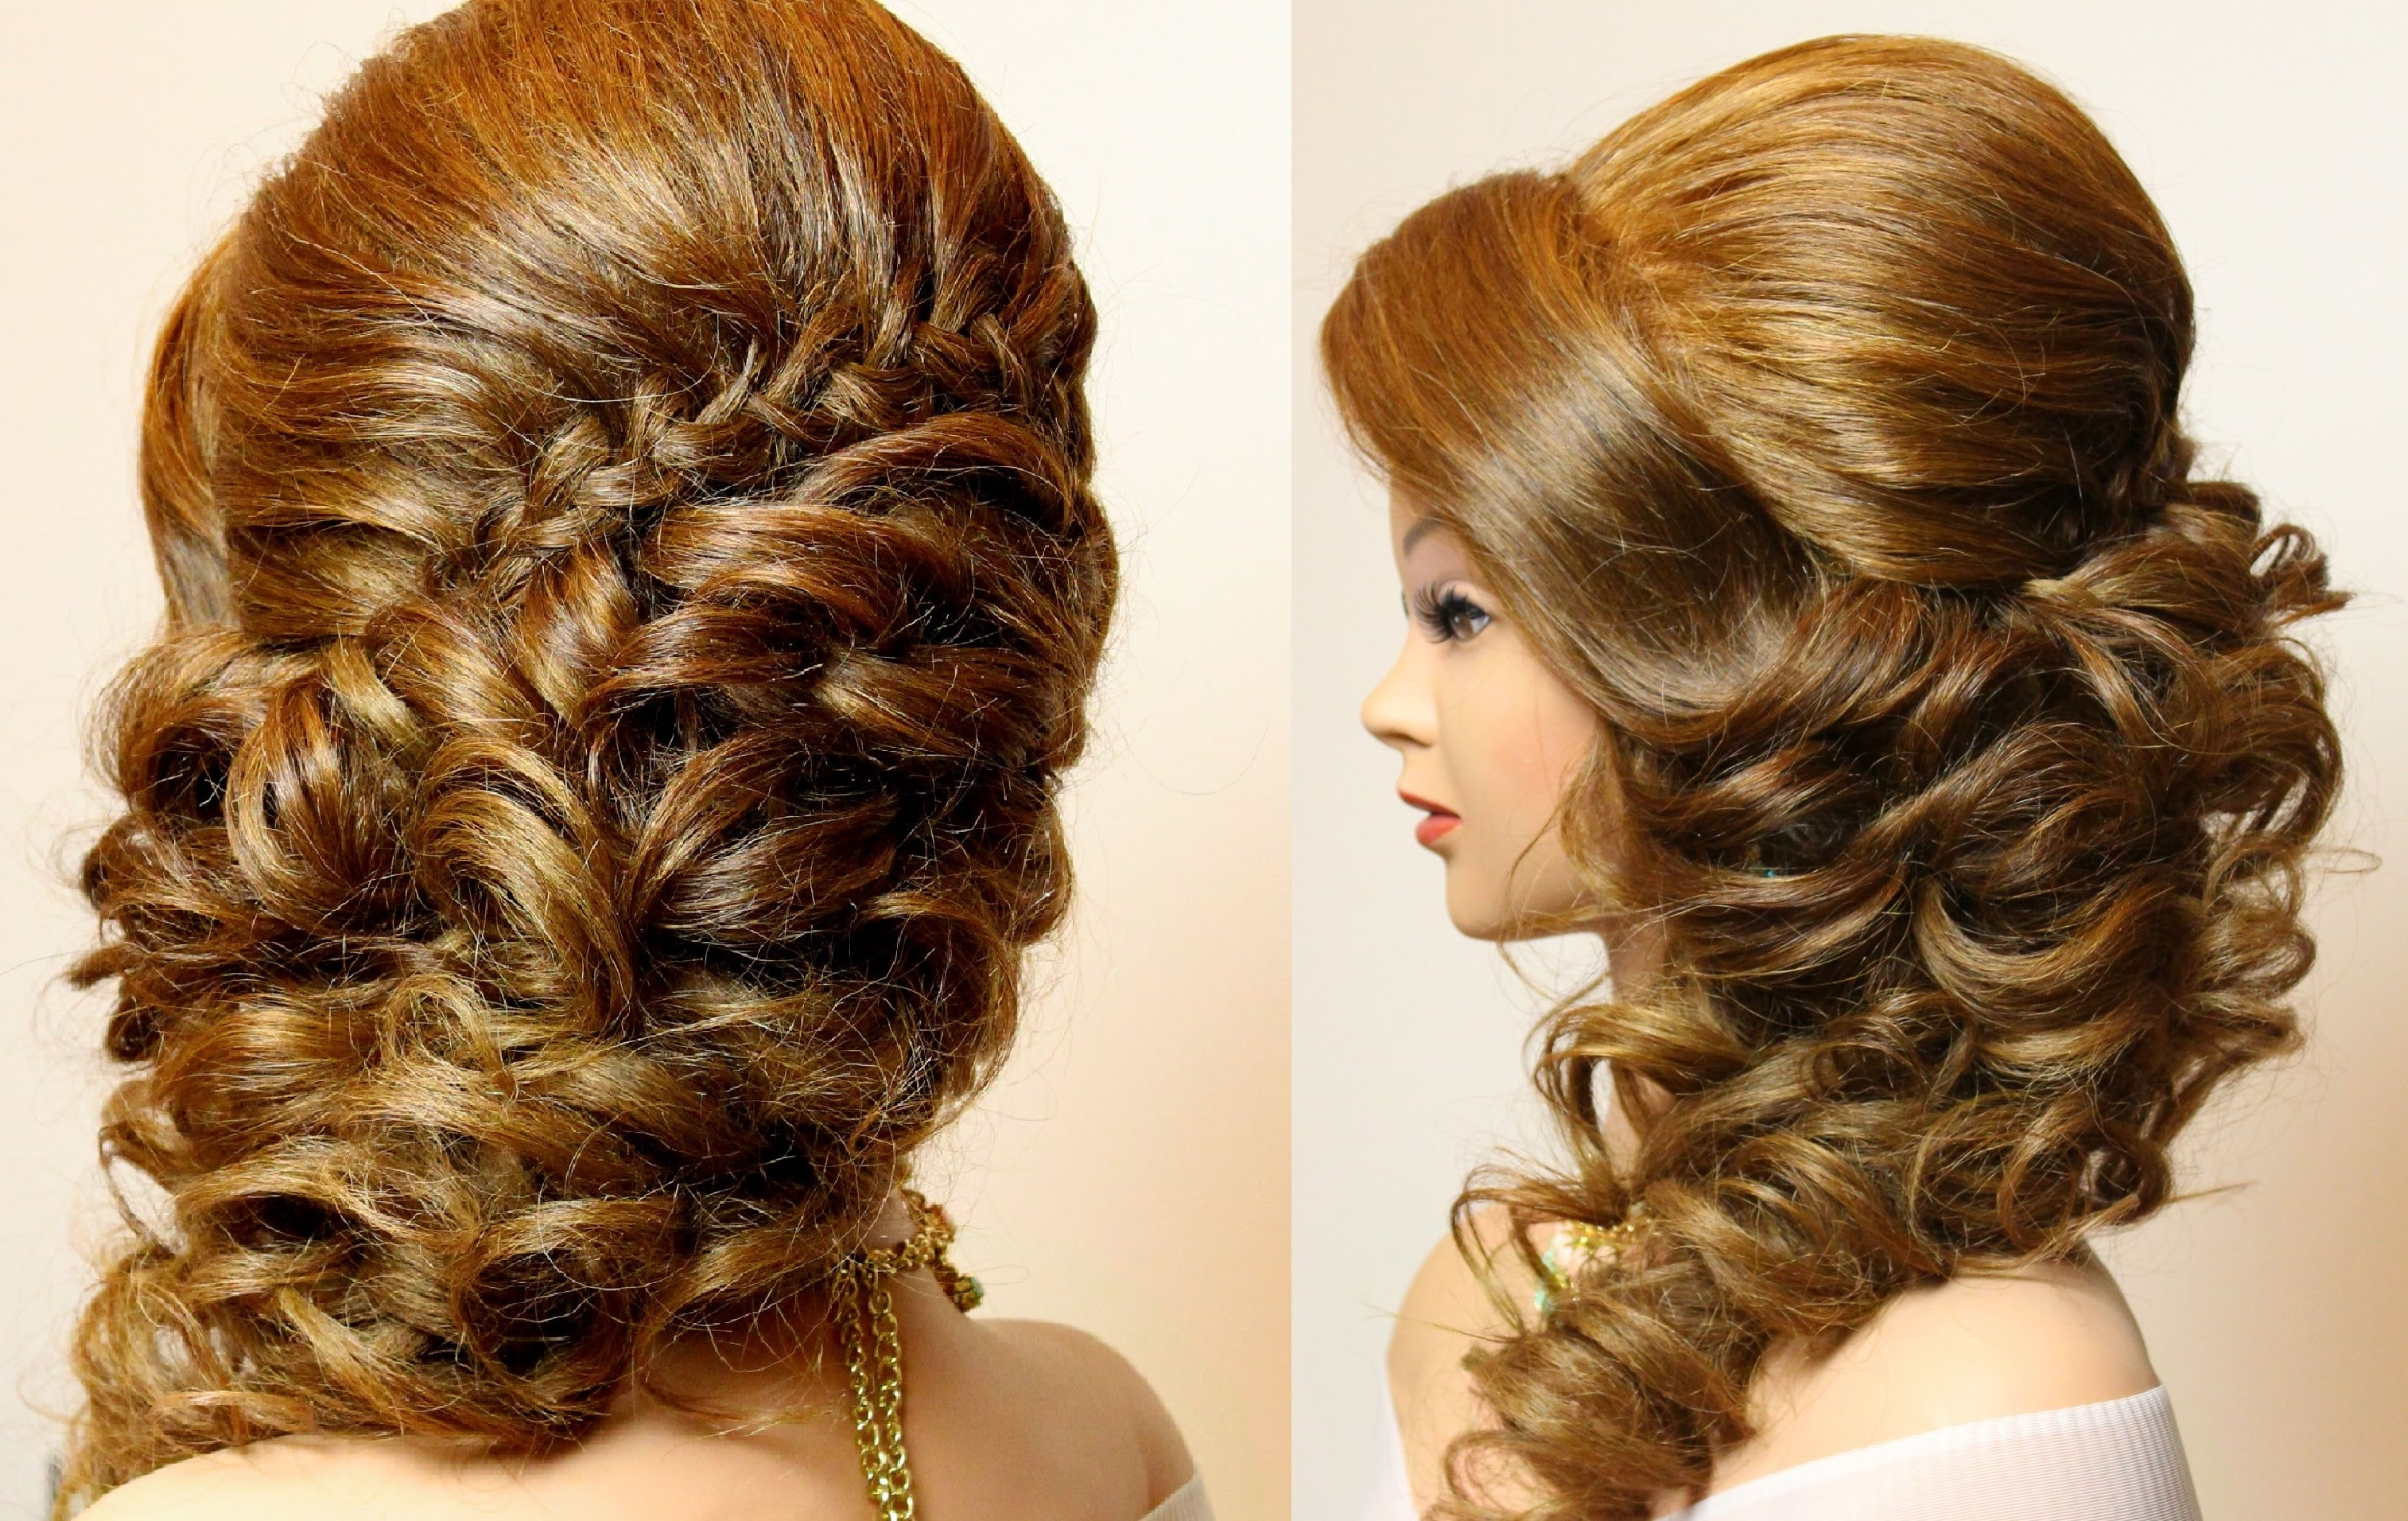 Most Recent Braided Hairstyles For Bridesmaid Regarding Bridal Hairstyle With Braid And Curls (View 11 of 15)